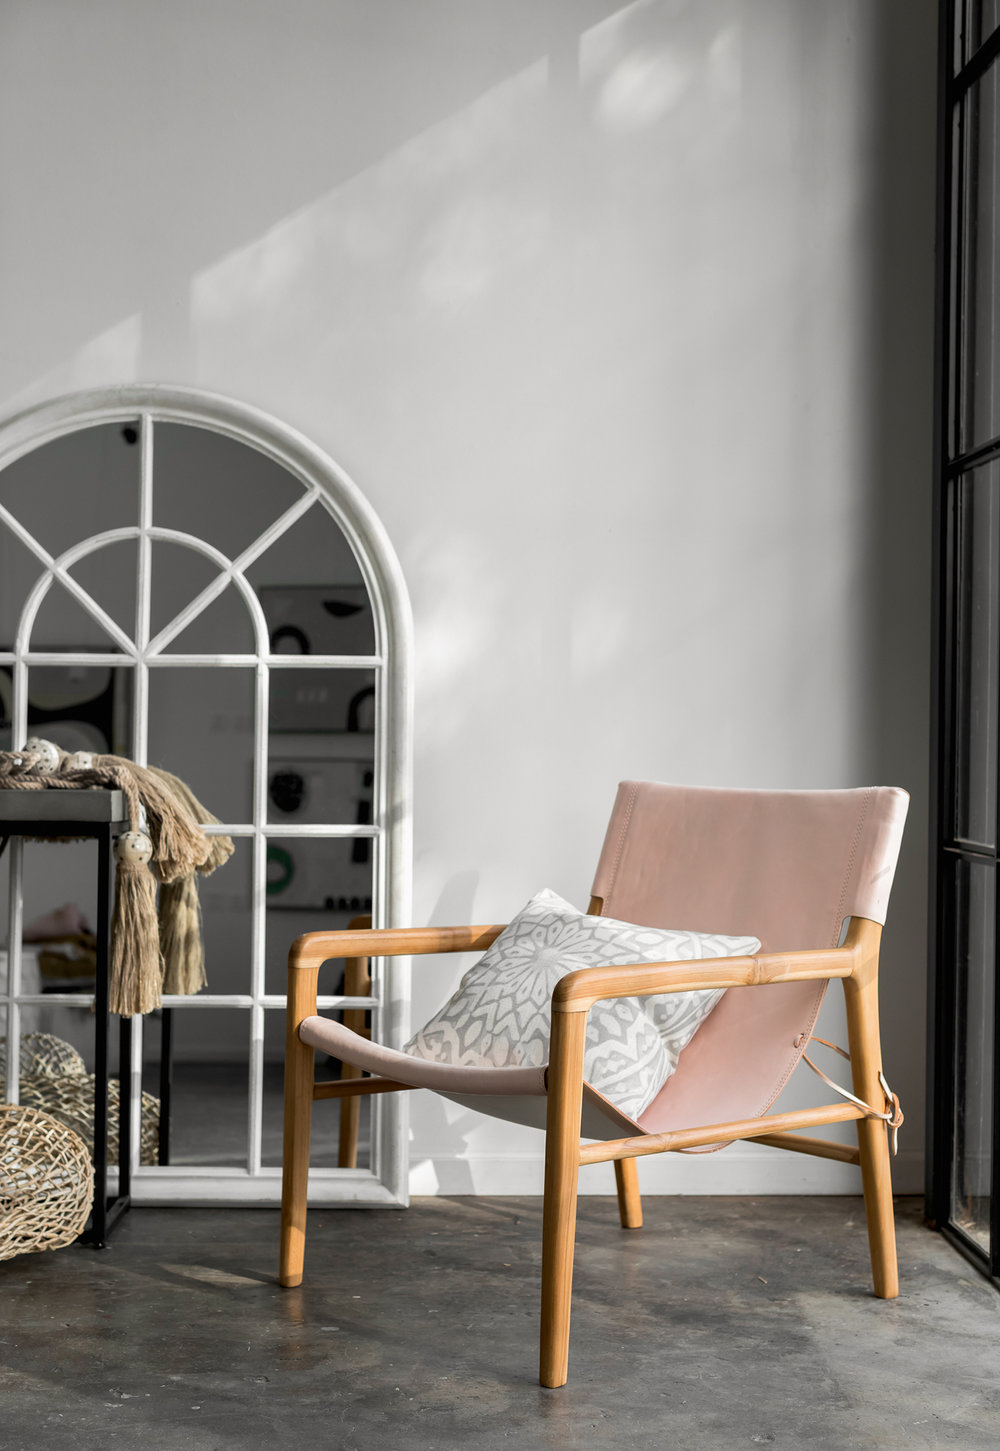 occasional chair reading nook by dunne interiors.jpg